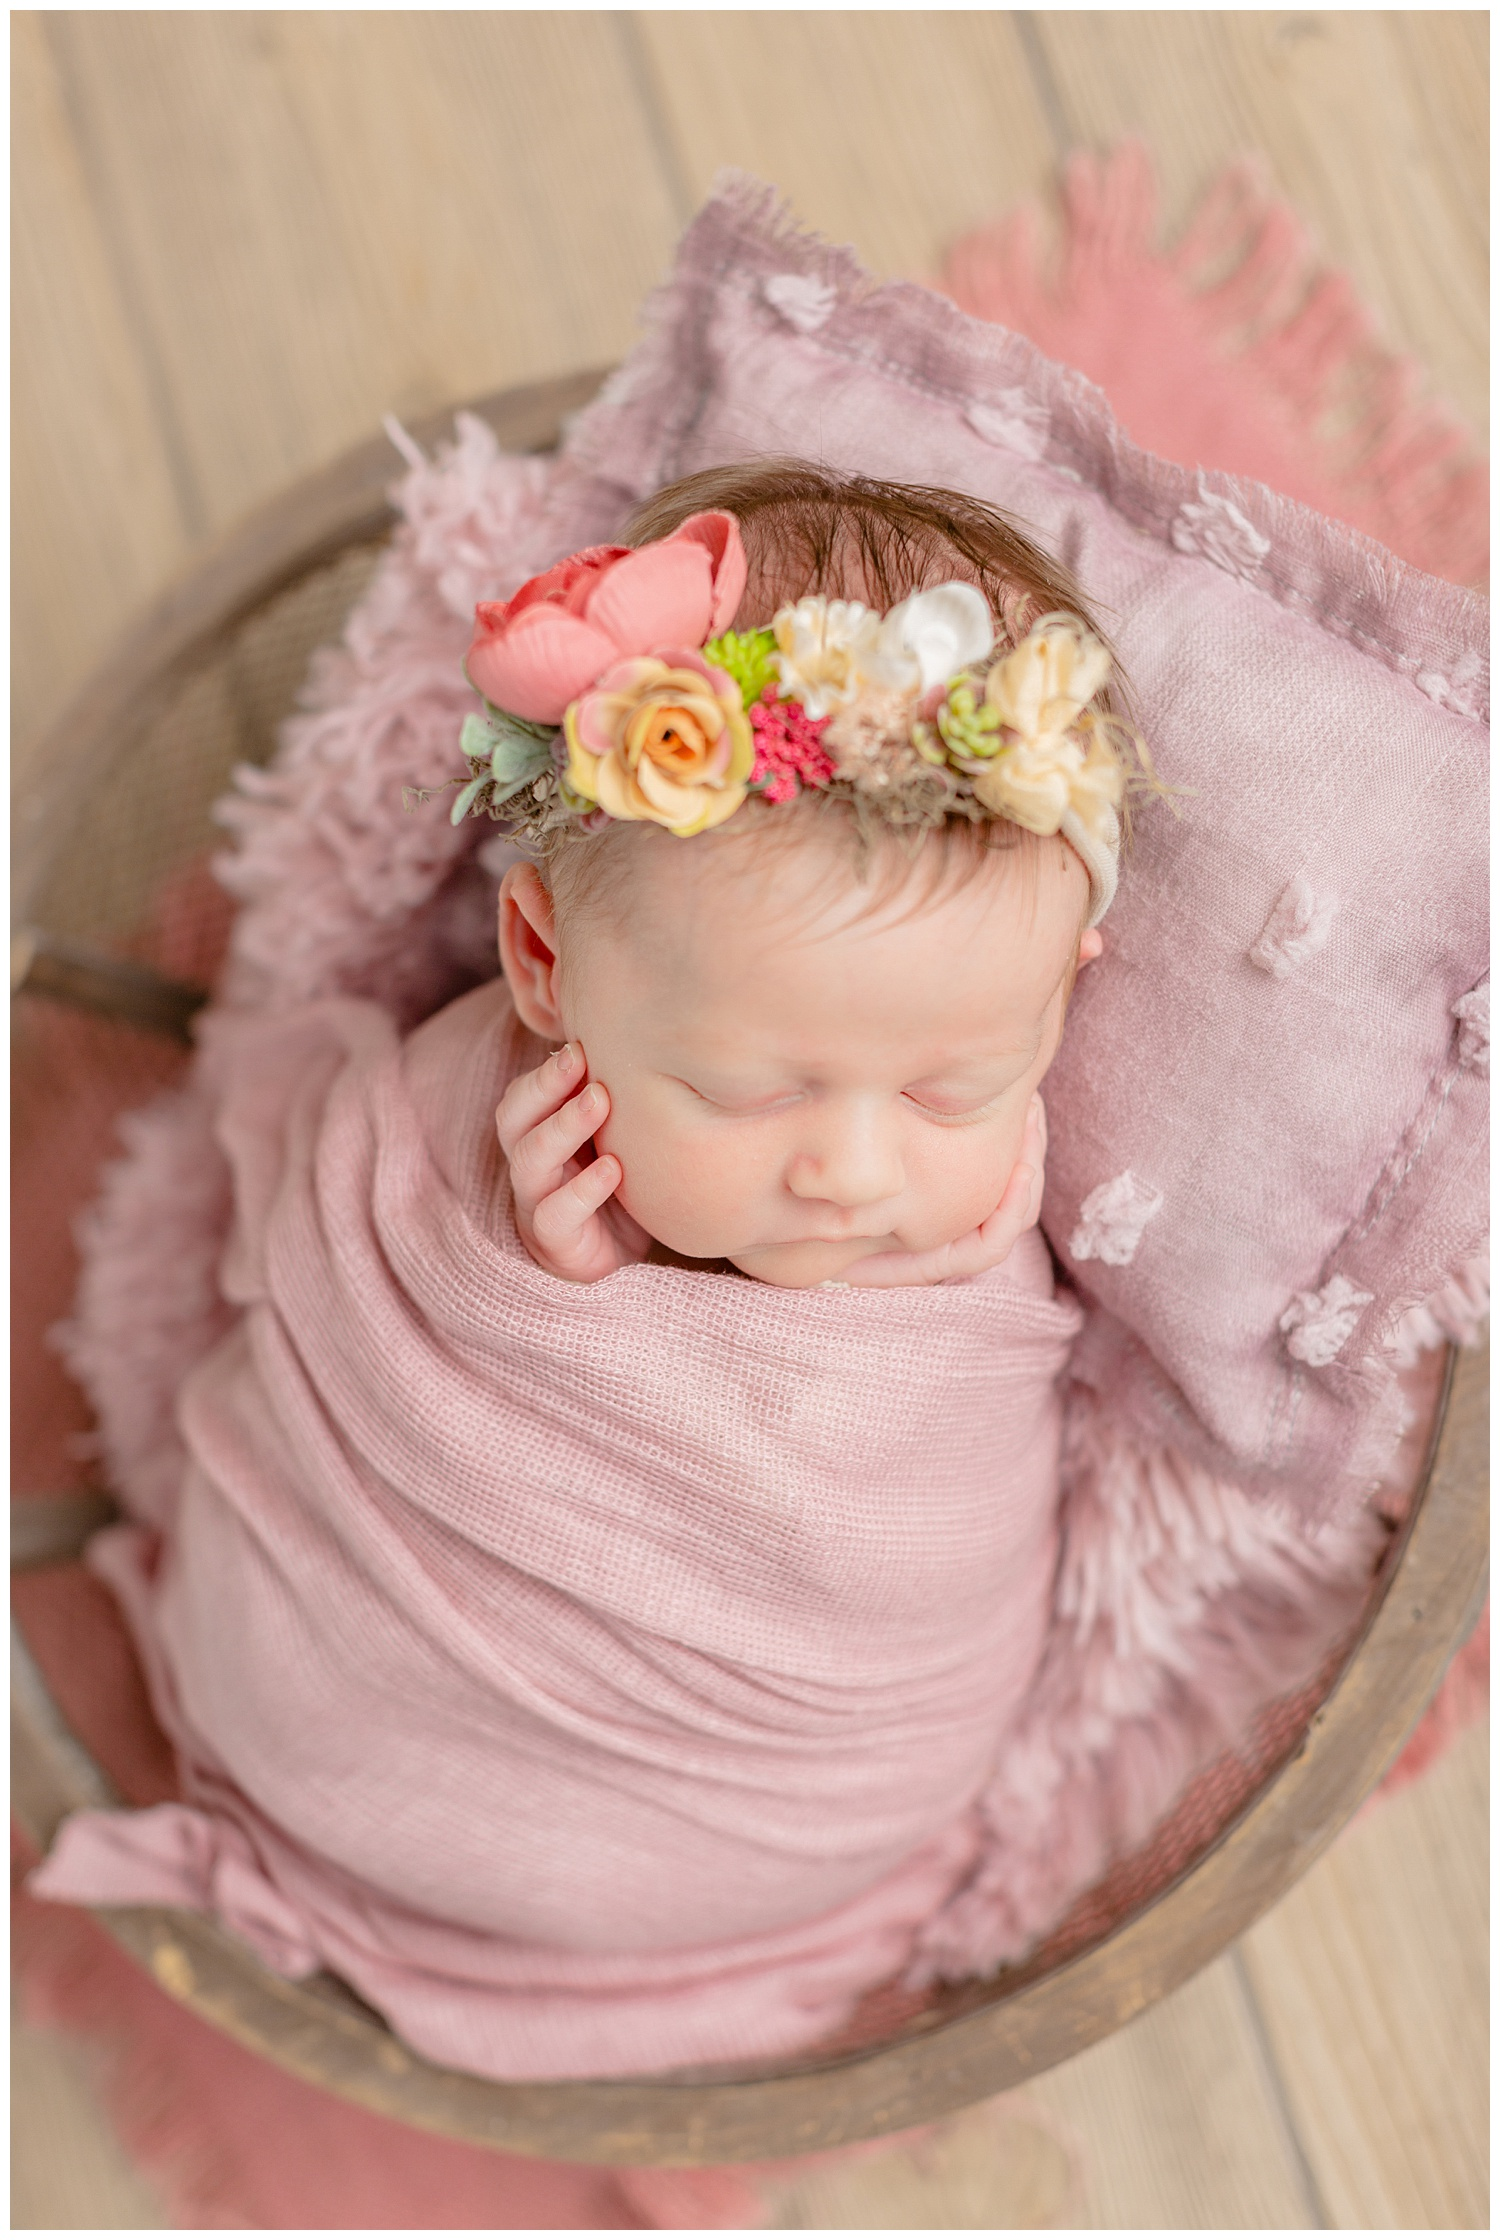 Newborn baby girl wrapped in a mauve colored stretch fabric snuggled in a basket bowl wearing a garden floral headband. | CB Studio